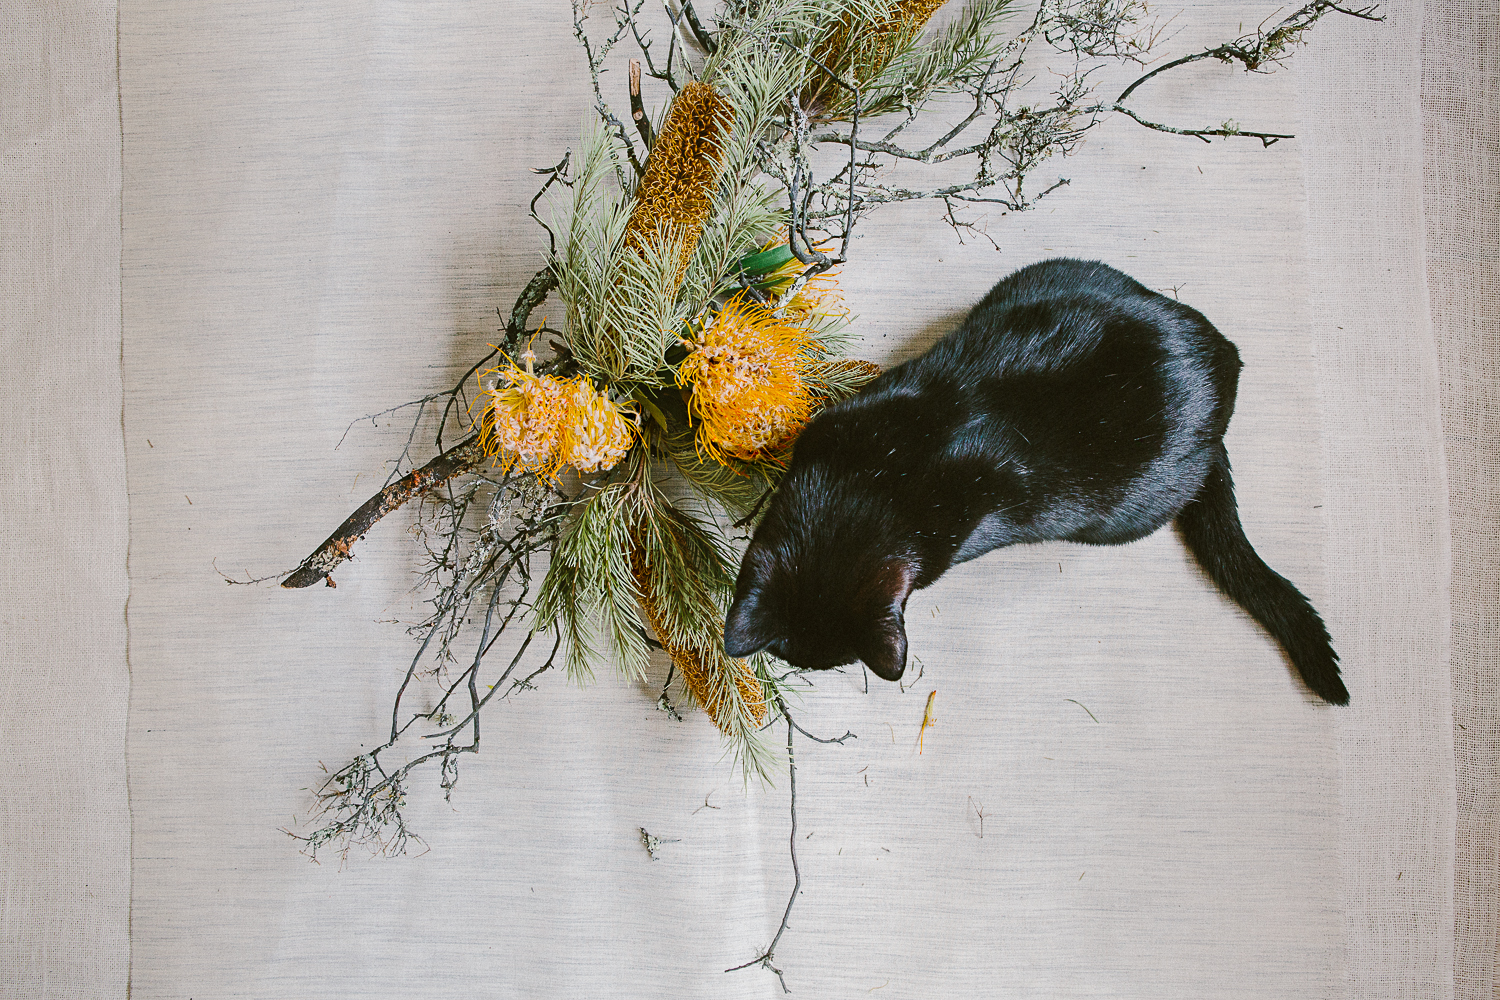 twoguineapigs_photography_ruby_slippers_cat_and_floral_series_1500-5.jpg